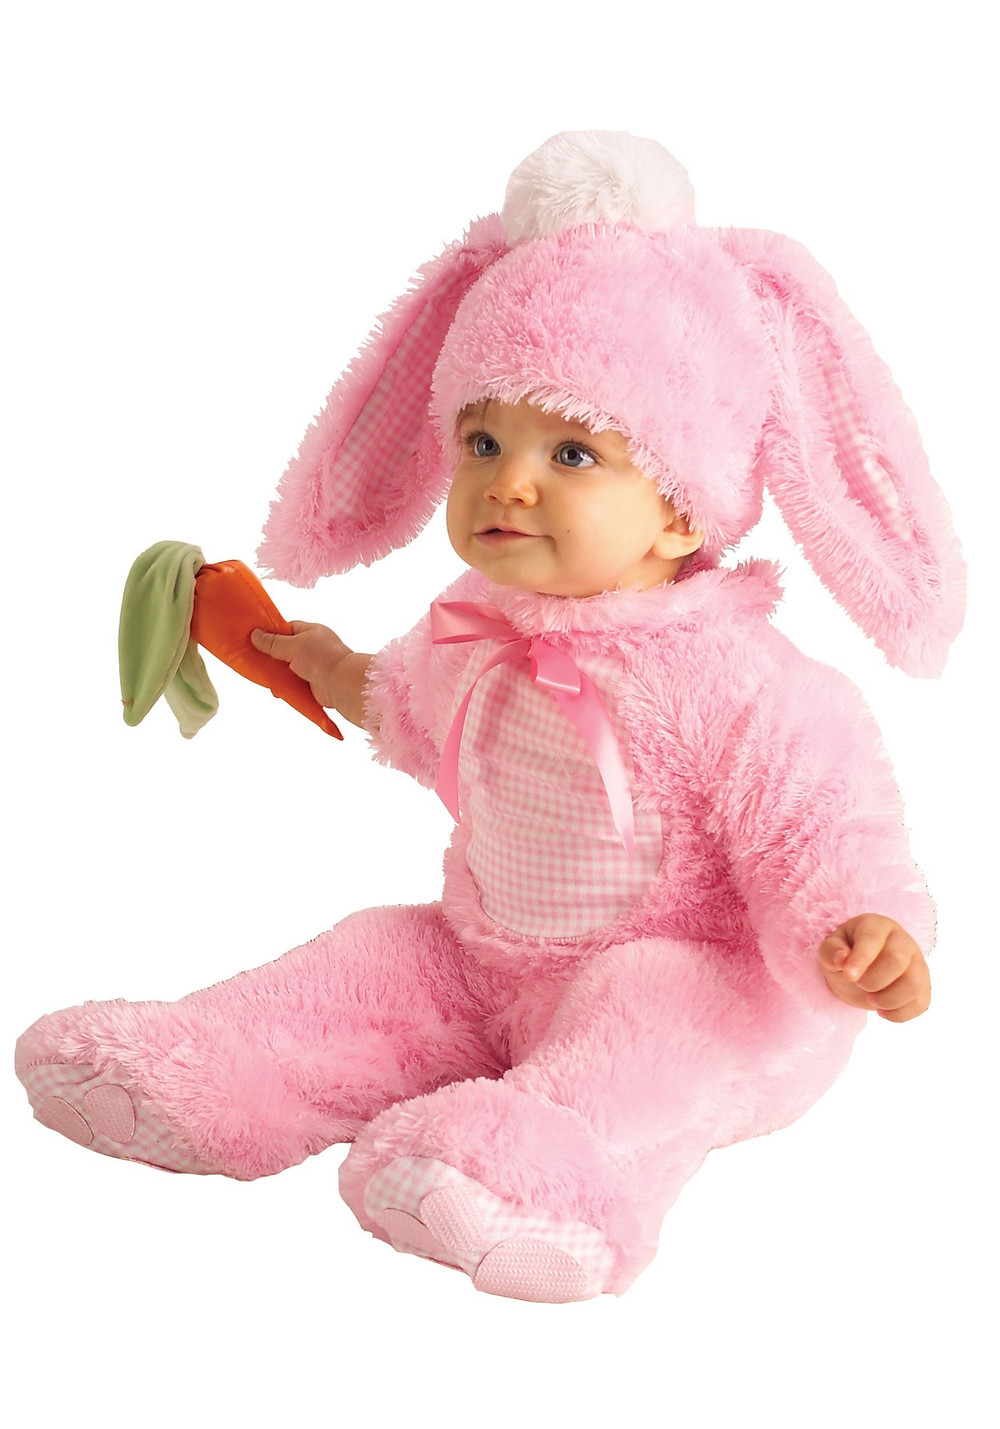 Easter bunny outfit for baby girl